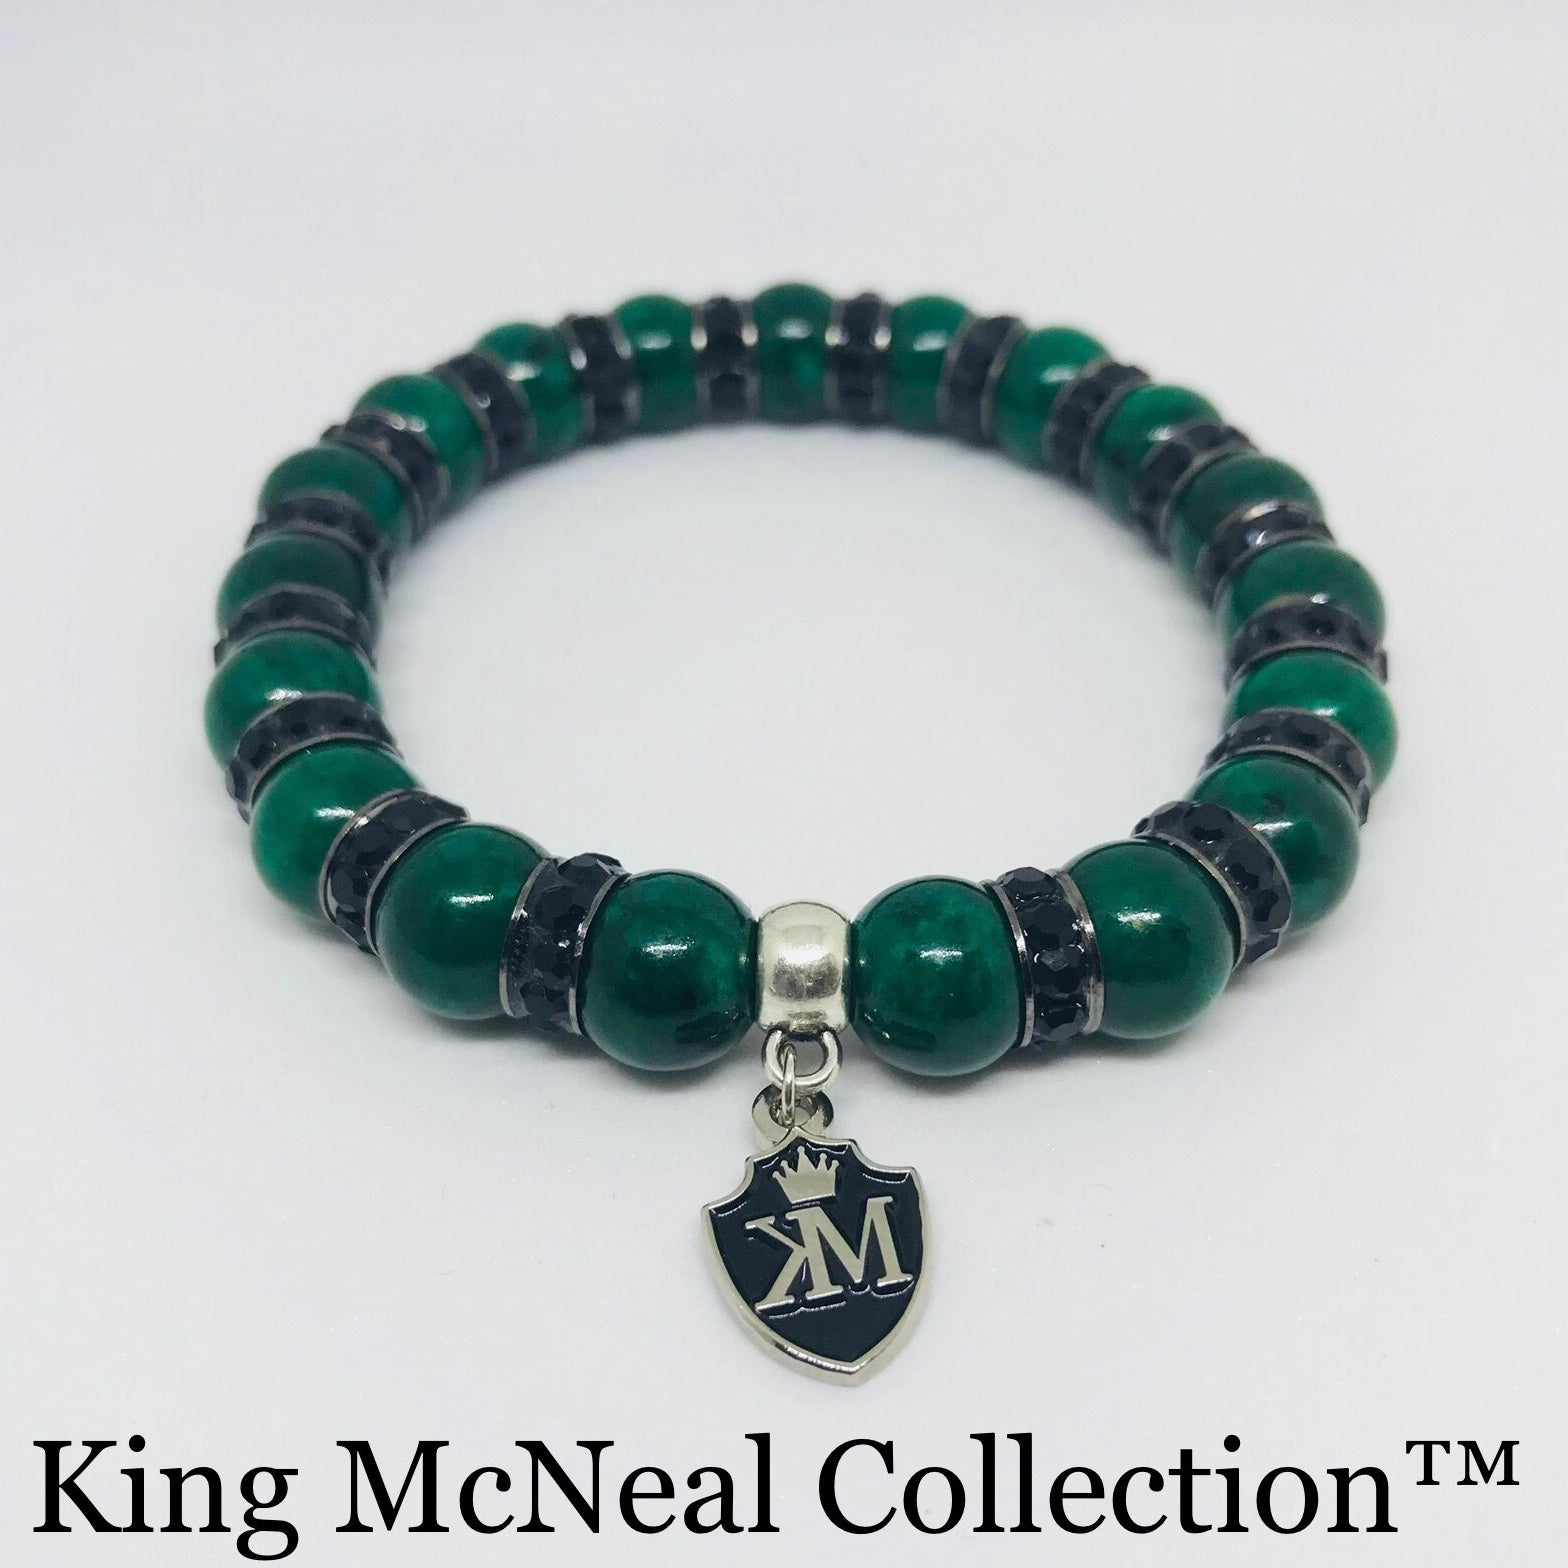 Green & Black KMC Bracelet